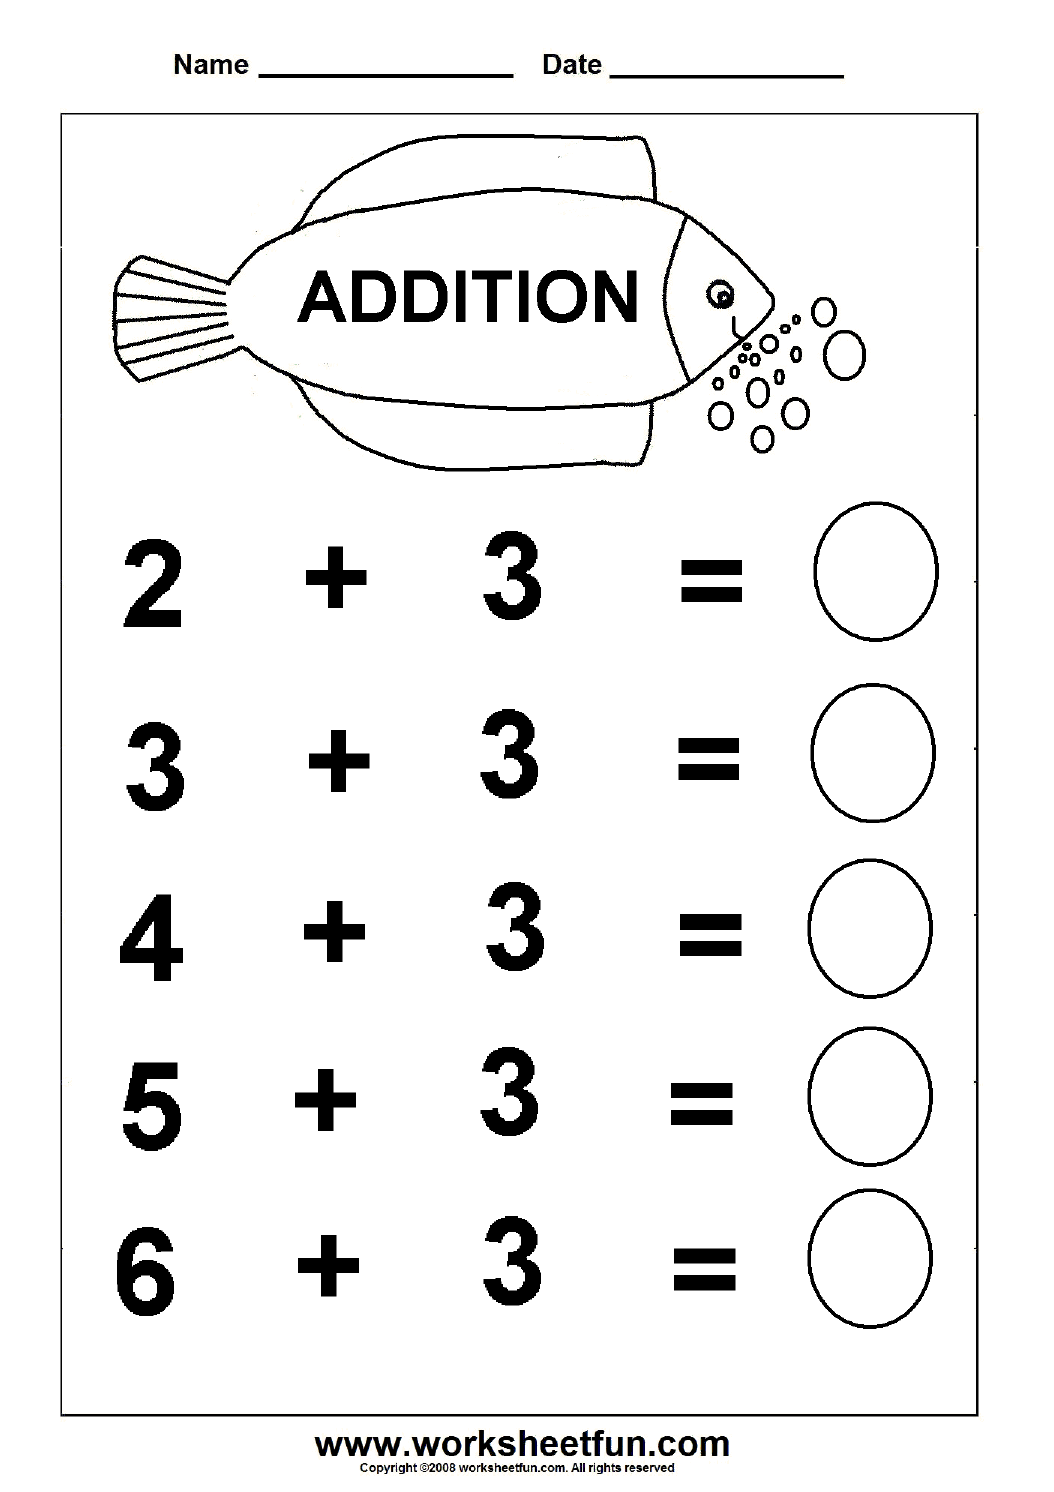 Uncategorized Kindergarden Math Worksheets beginner addition 6 kindergarten worksheets free subtraction worksheets